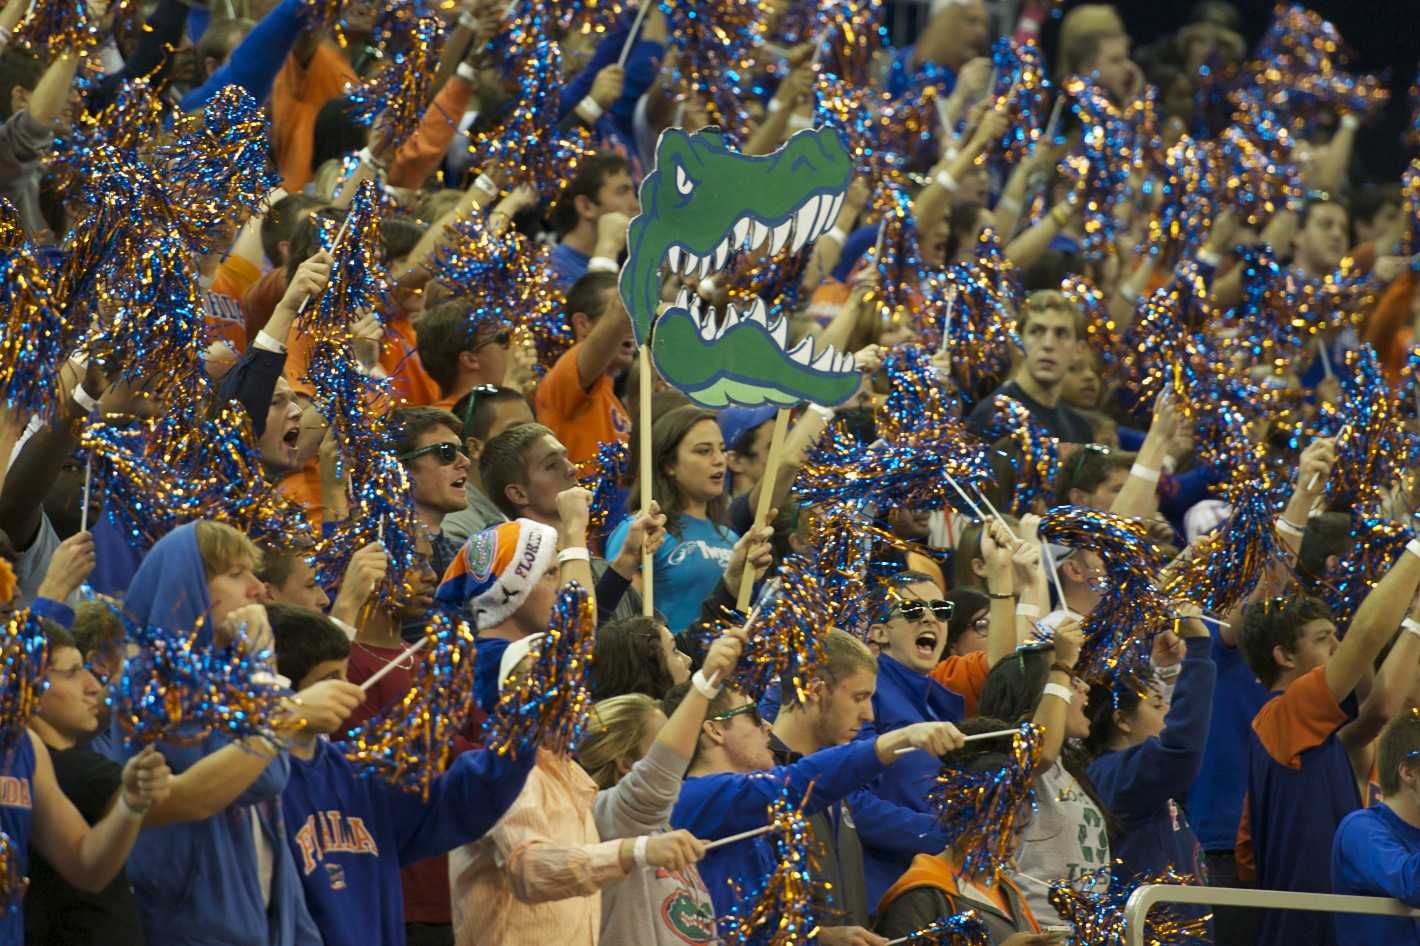 Fans filled the stands to show their support for the Florida Gators Thursday night.